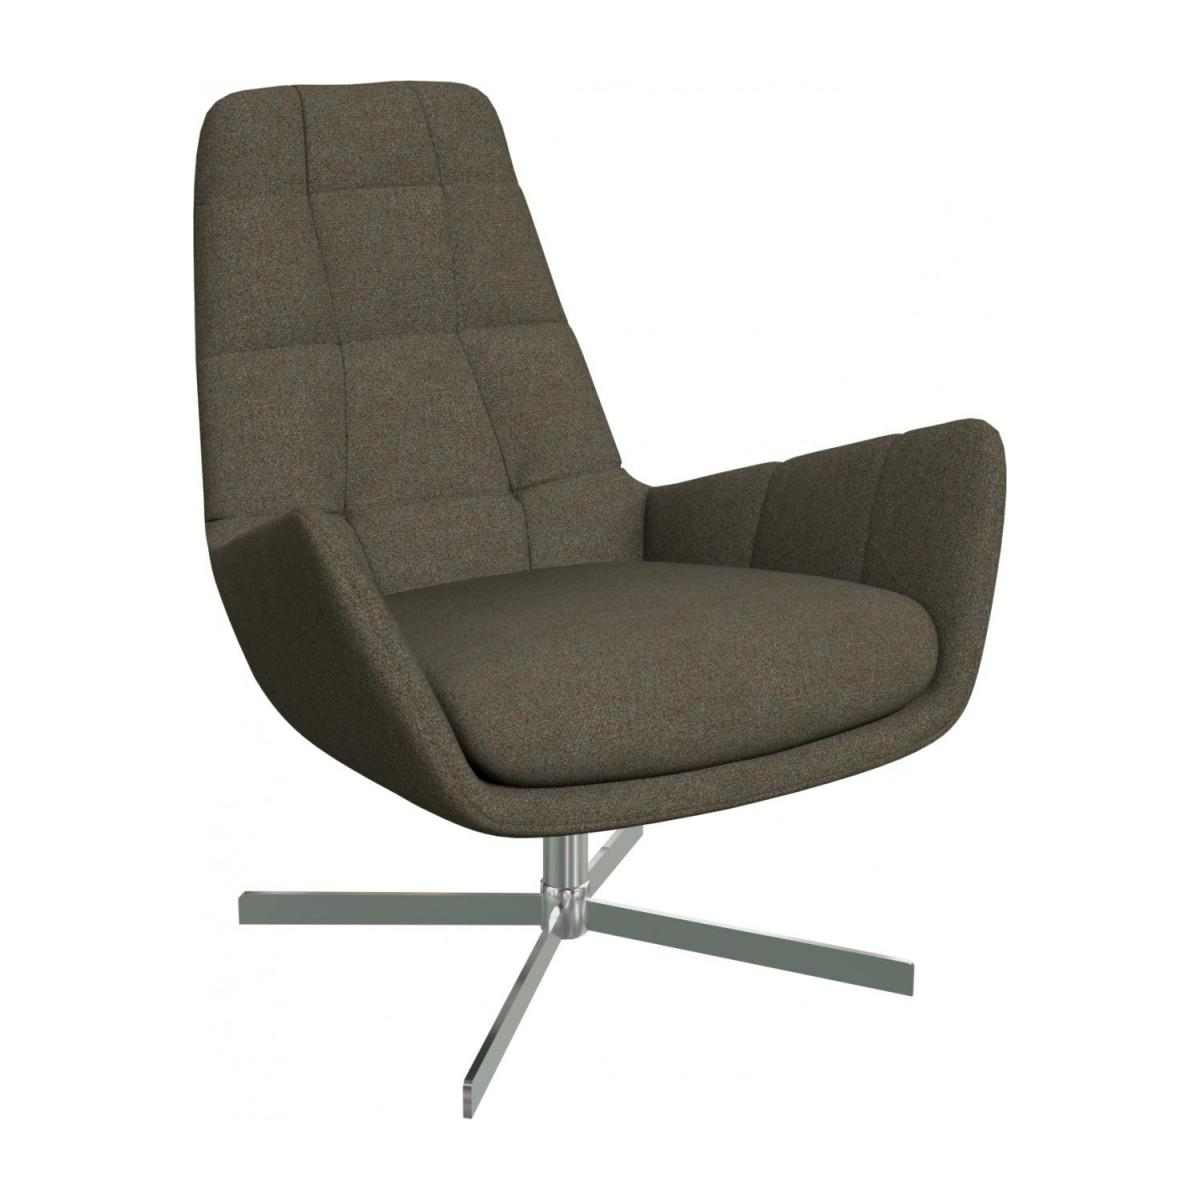 Armchair in Lecce fabric, slade grey with metal cross leg n°1